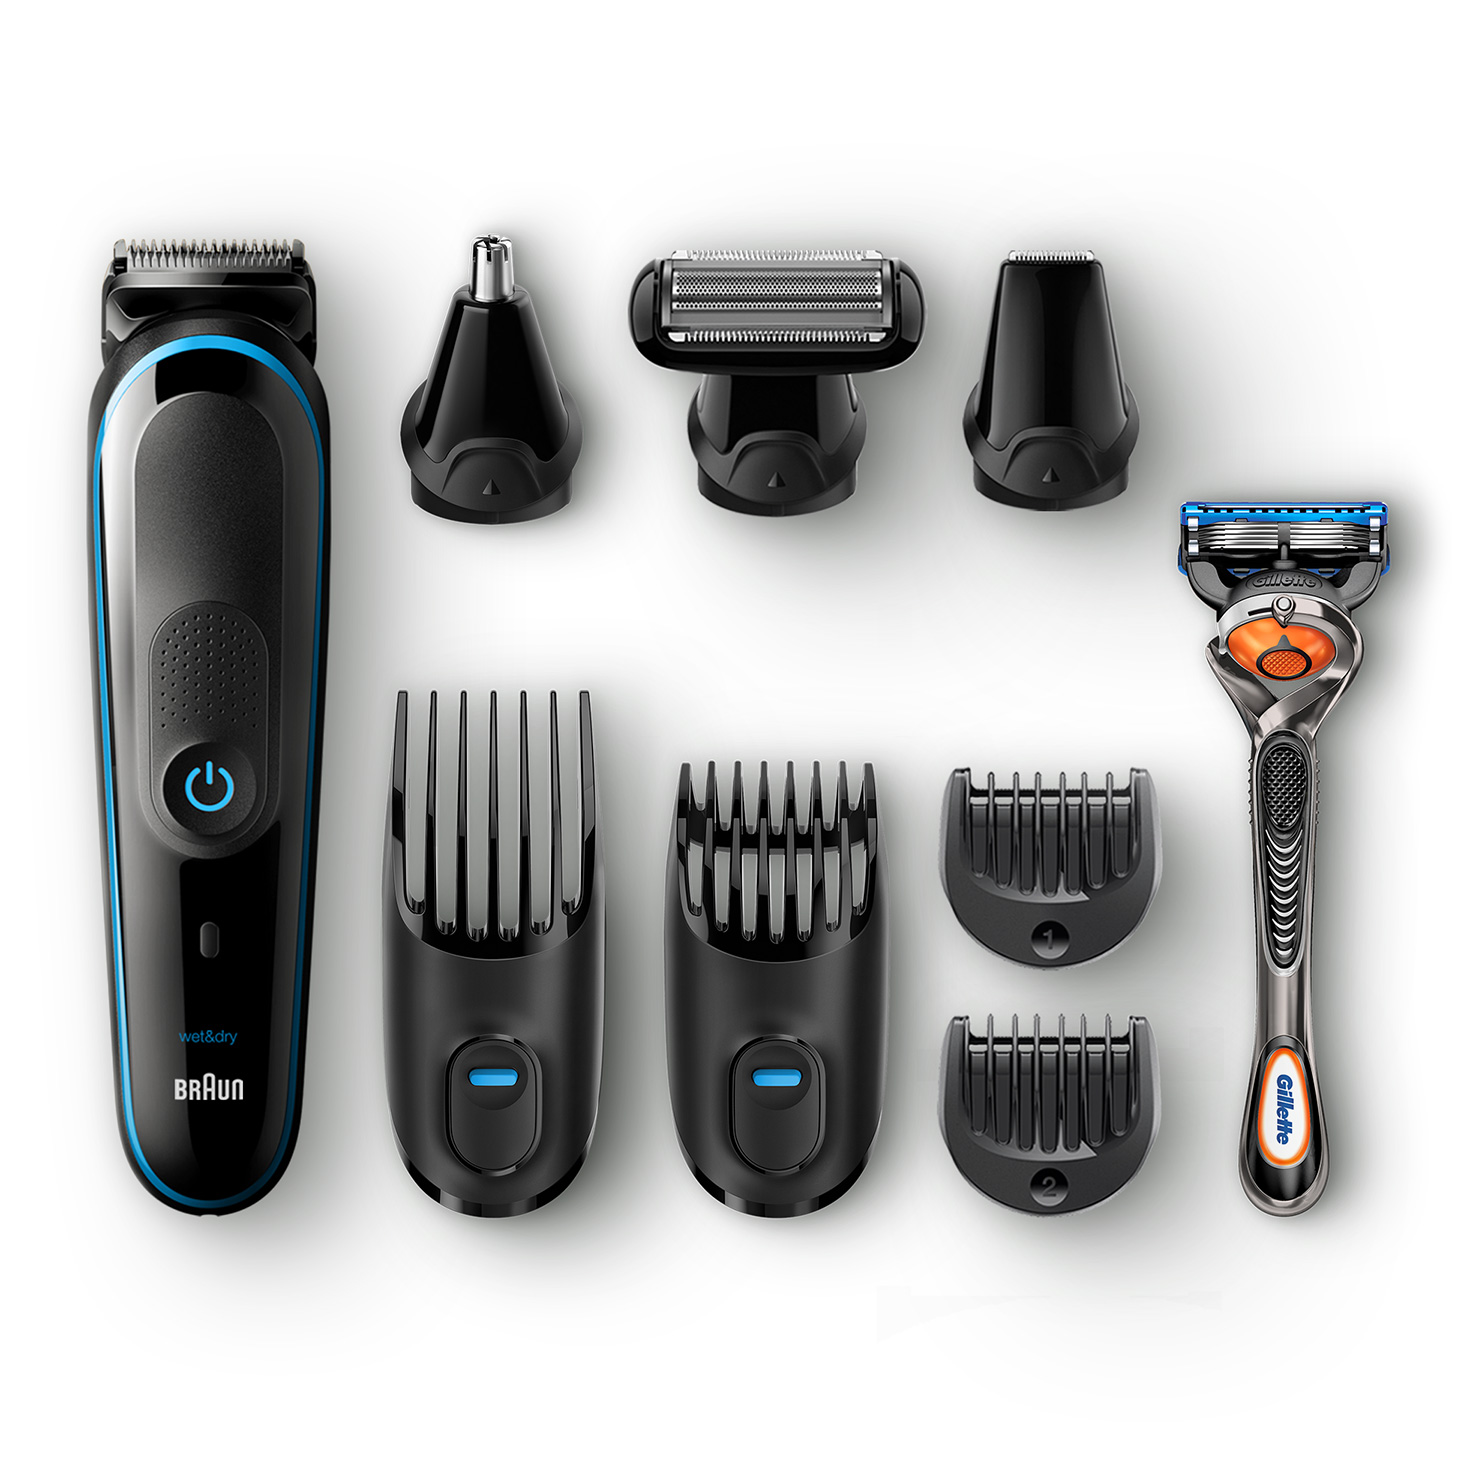 Braun All-in-one trimmer MGK5080 - What´s in the box